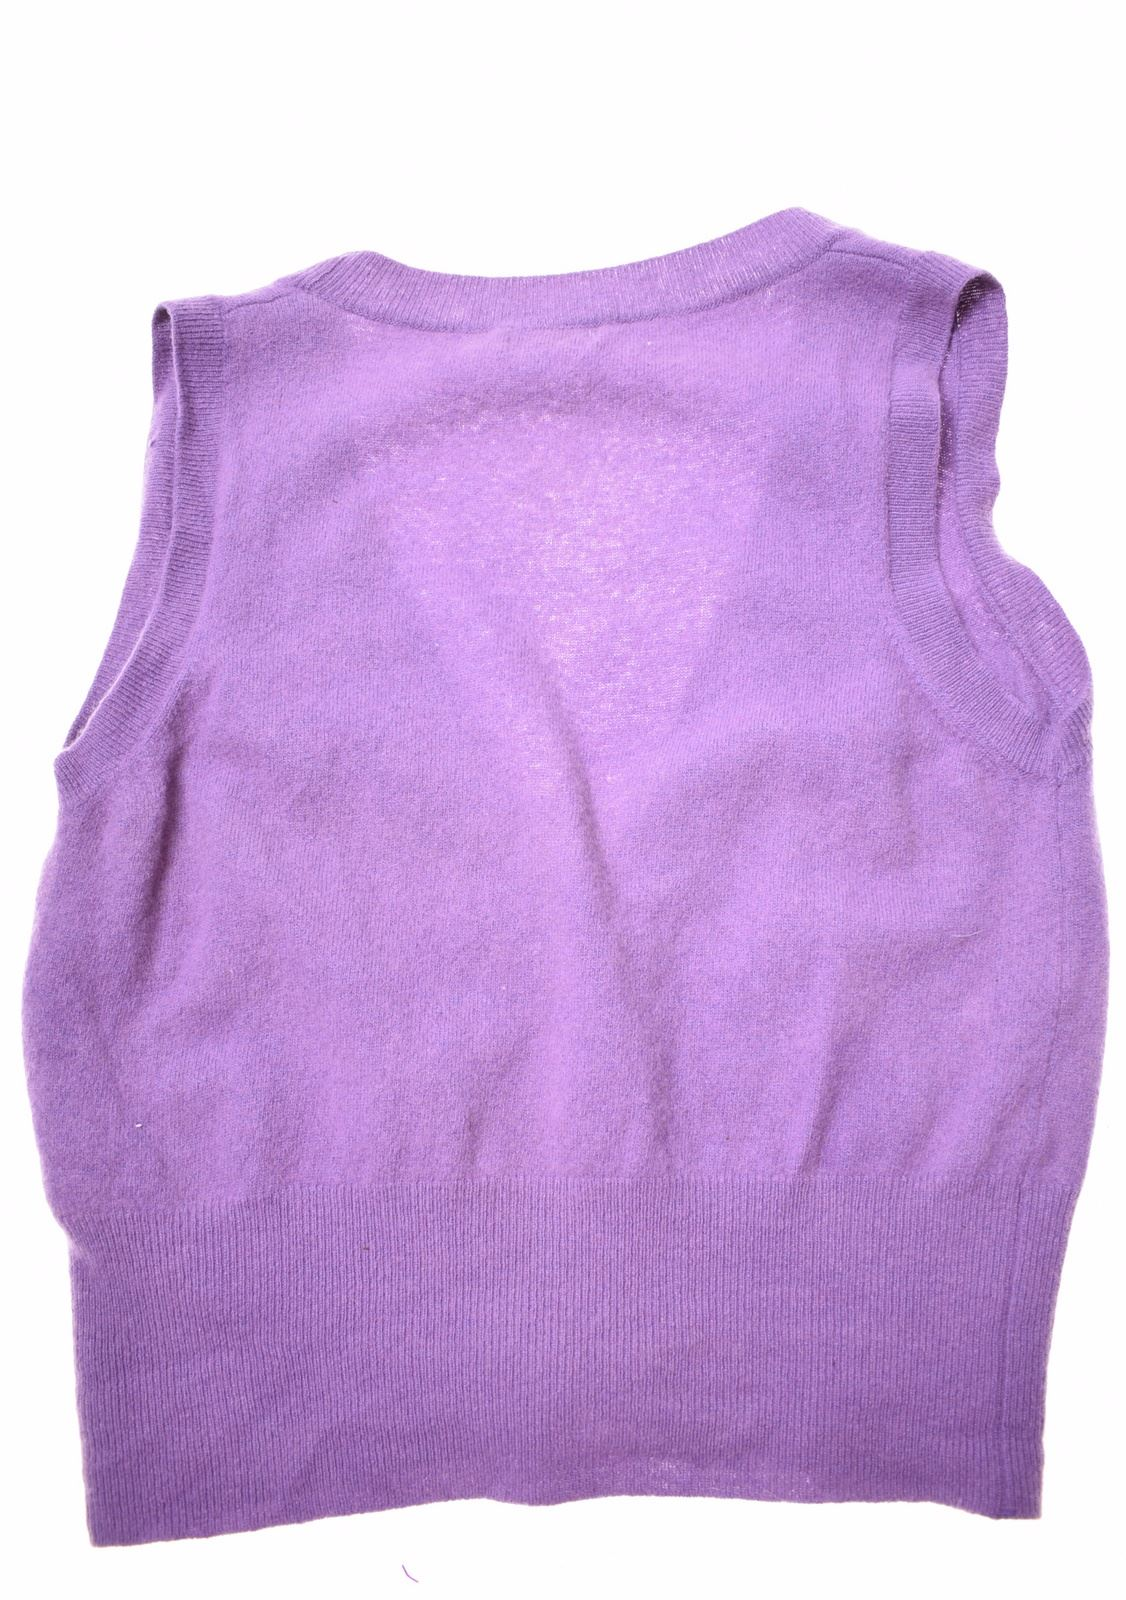 Details about UNITED COLORS OF BENETTON Girls Cardigan Sleeveless 12 13 Years Purple Wool